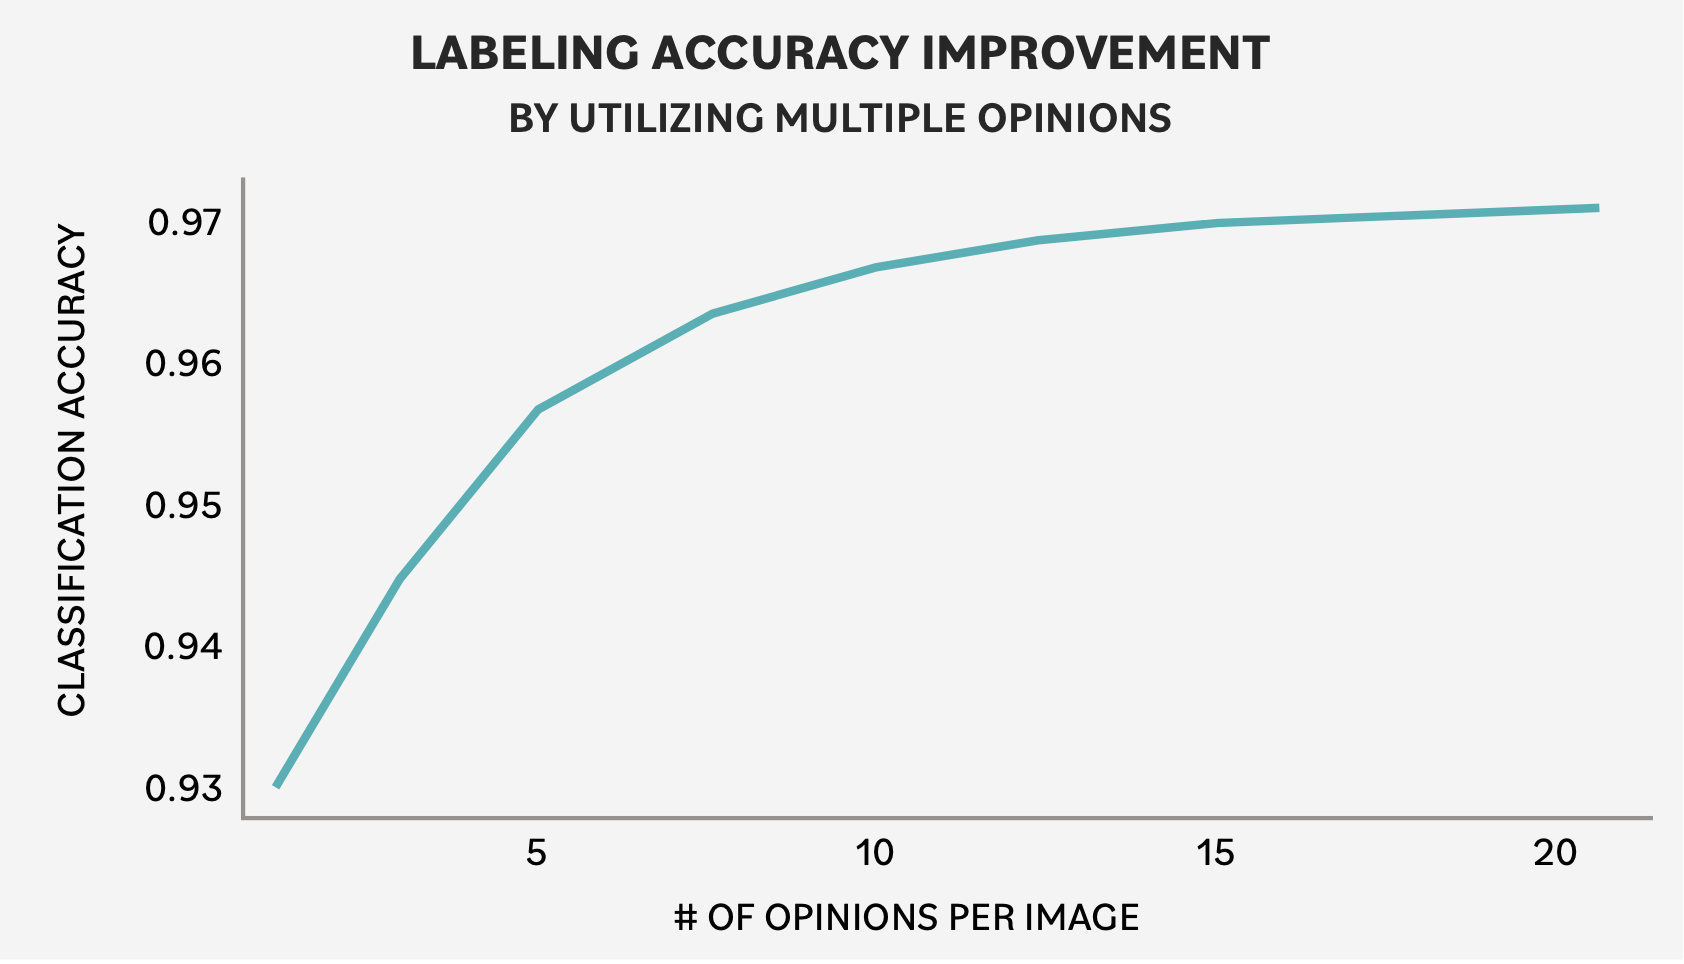 Multiple medical opinions improve medical data labeling accuracy